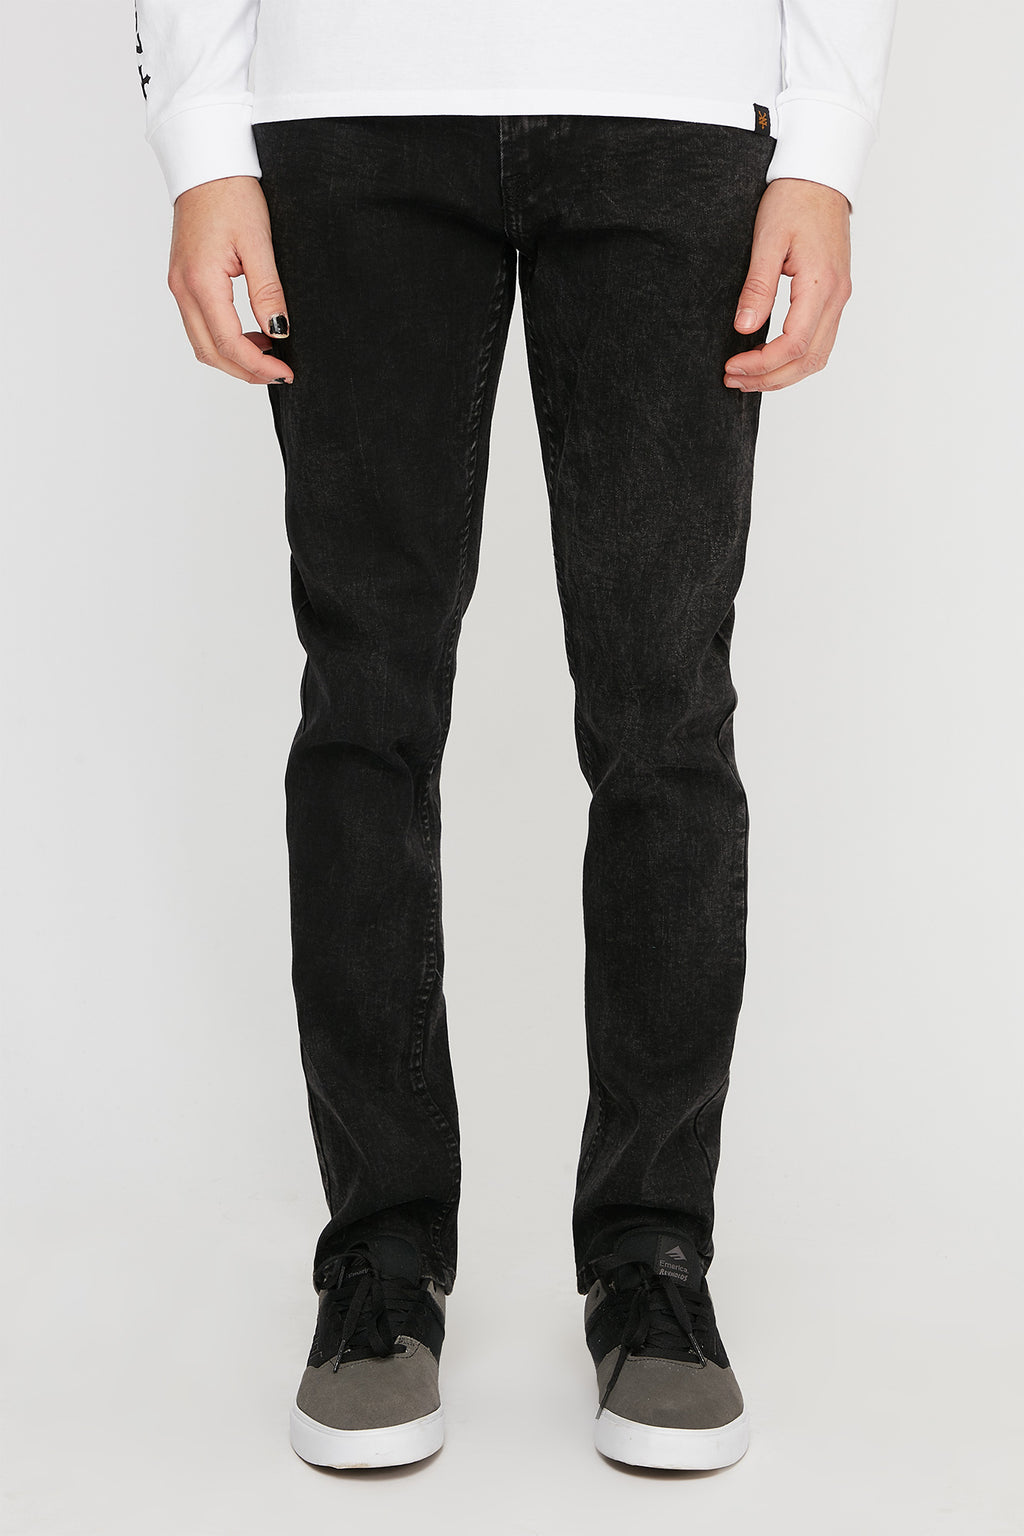 Zoo York Mens Slim Black Jeans